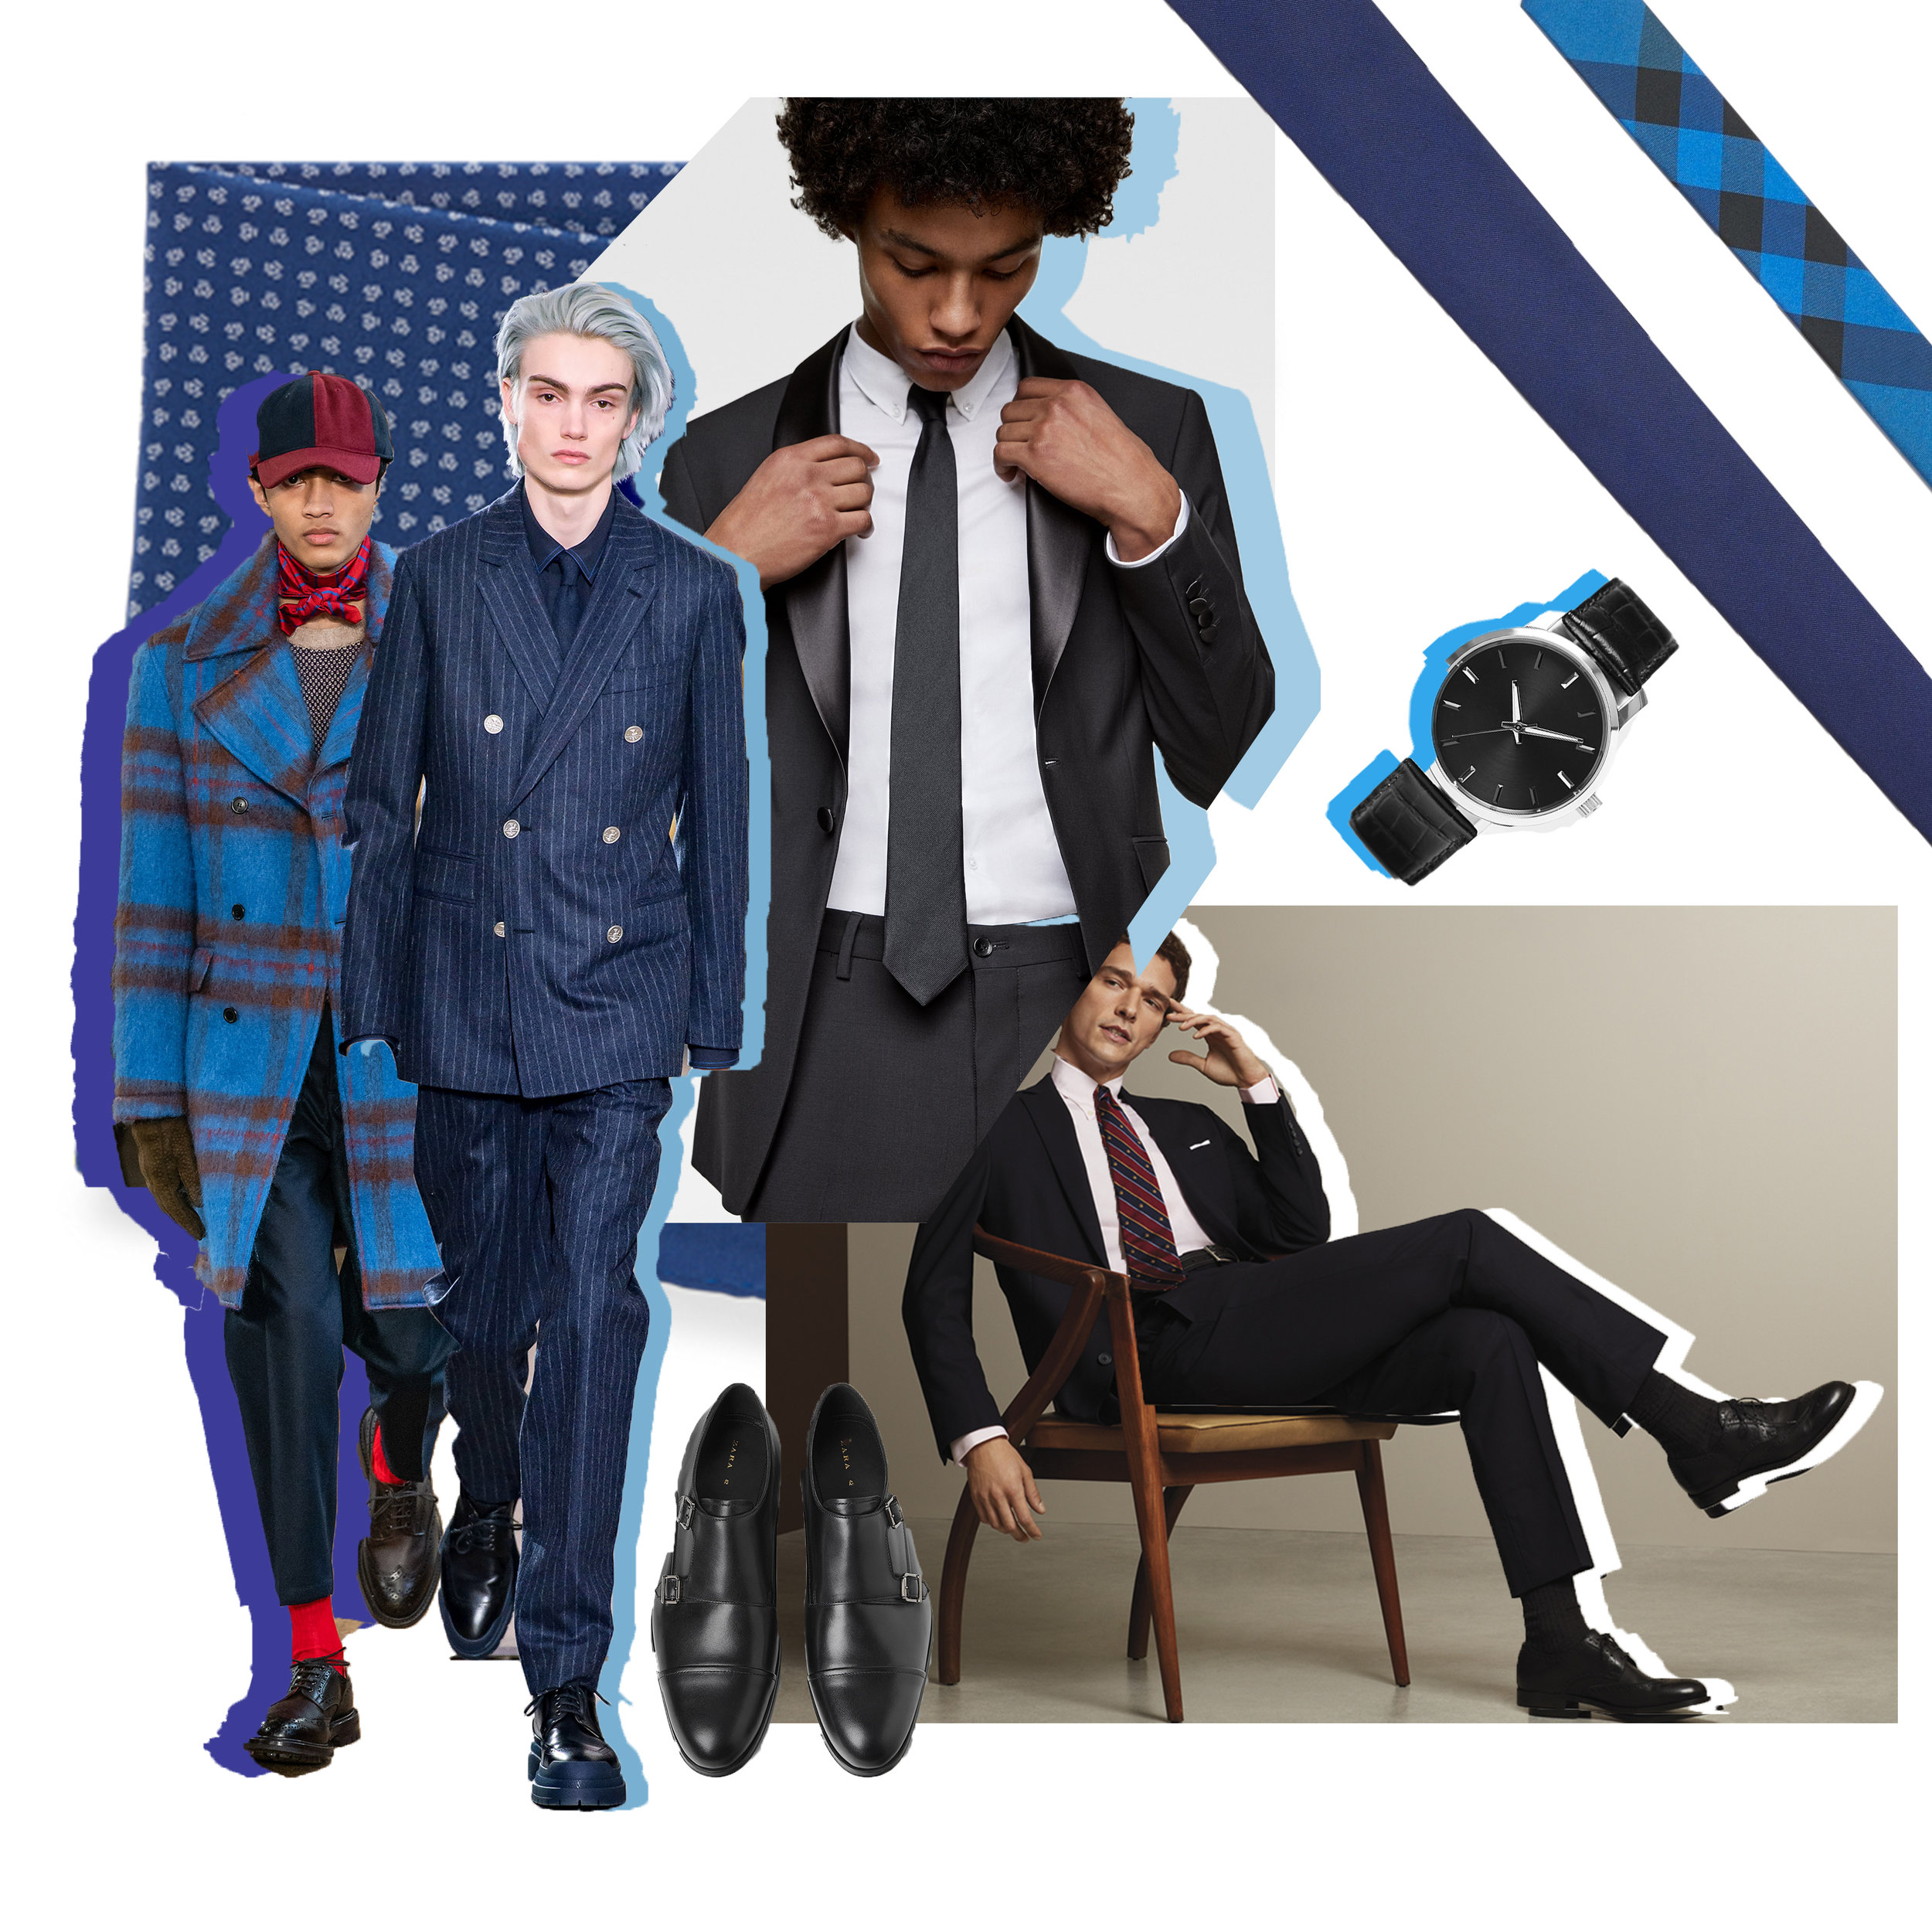 The Gentleman - For a clean, classic look, focus on more sophisticated cuts and tailoring. You really can't go wrong with a good suit and tie, throw on a pair of dress shoes, a watch and a great long coat to complete your flawless fit for your fabulous night. Shades of black, grey, white and navy suggest a more classic vibe, while bright or pastel monochrome suits add a dash of playfulness for a more contemporary look. The look is all about taking something super traditional and adding a dash of your own personality. A suit doesn't mean you can skimp on accessories!